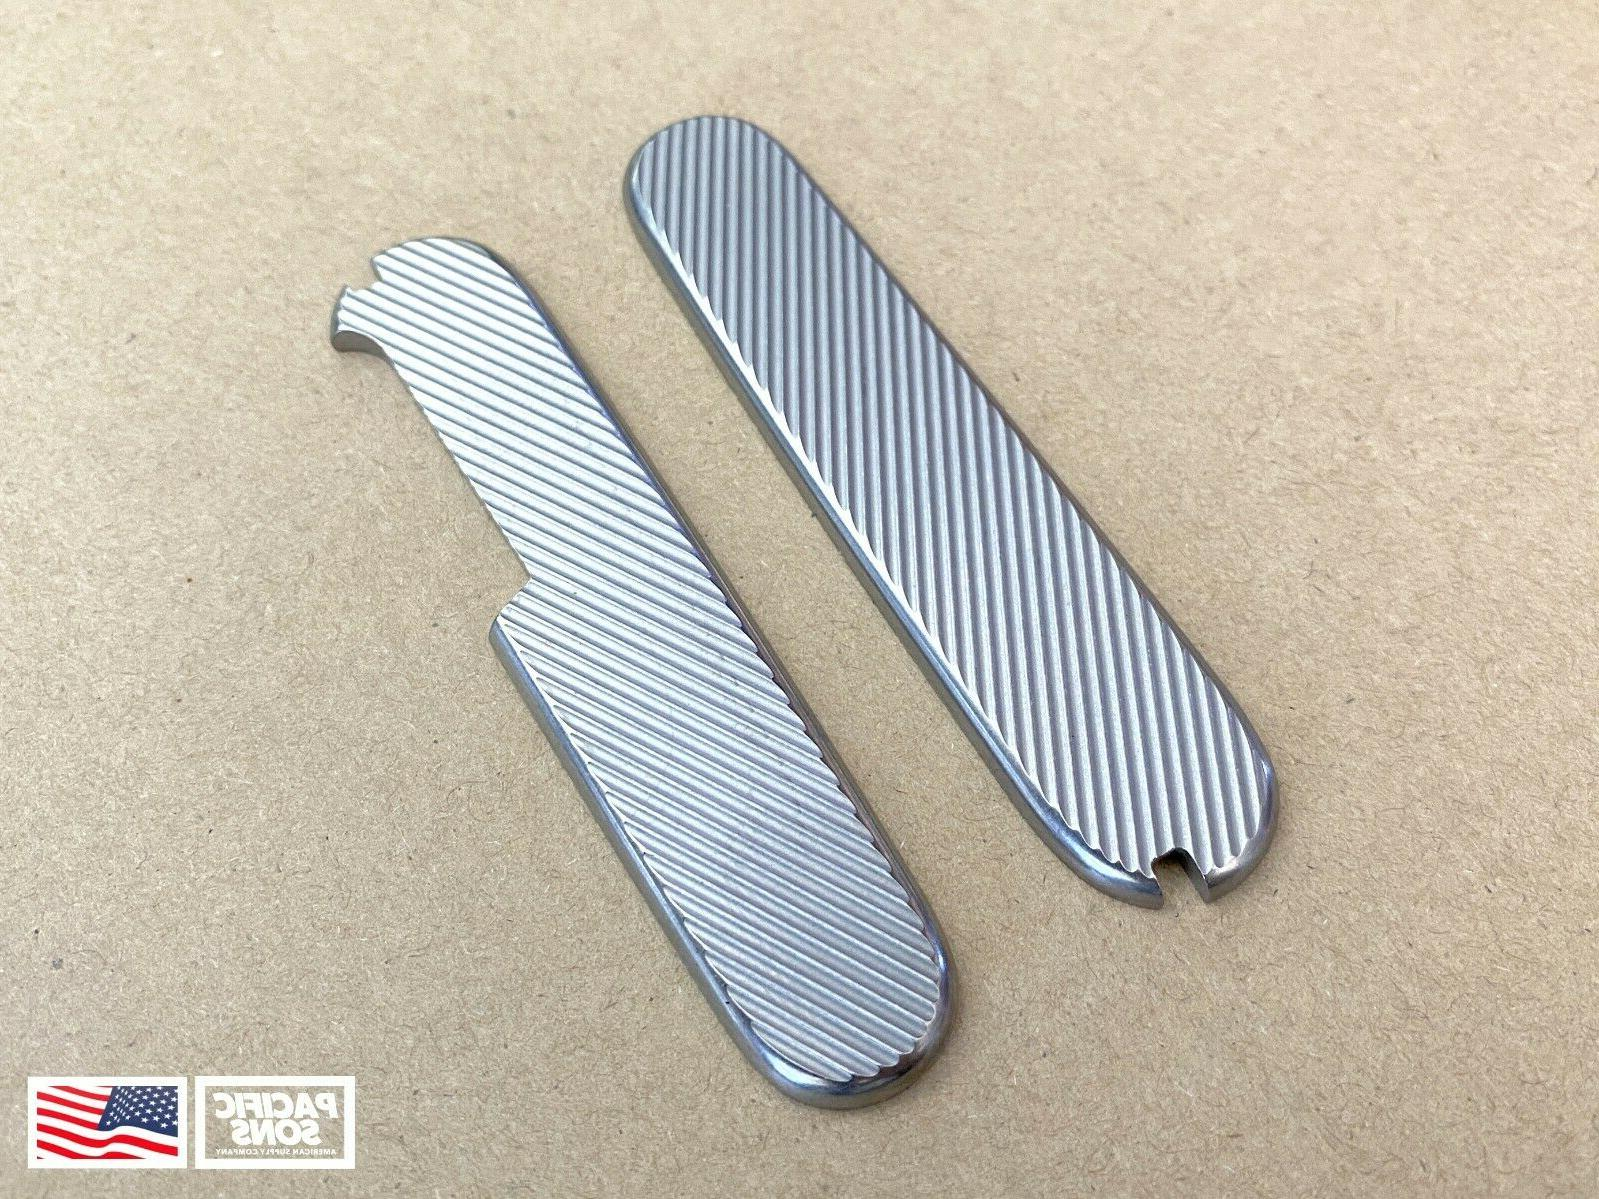 91mm Titanium Victorinox Army Scales Line Only